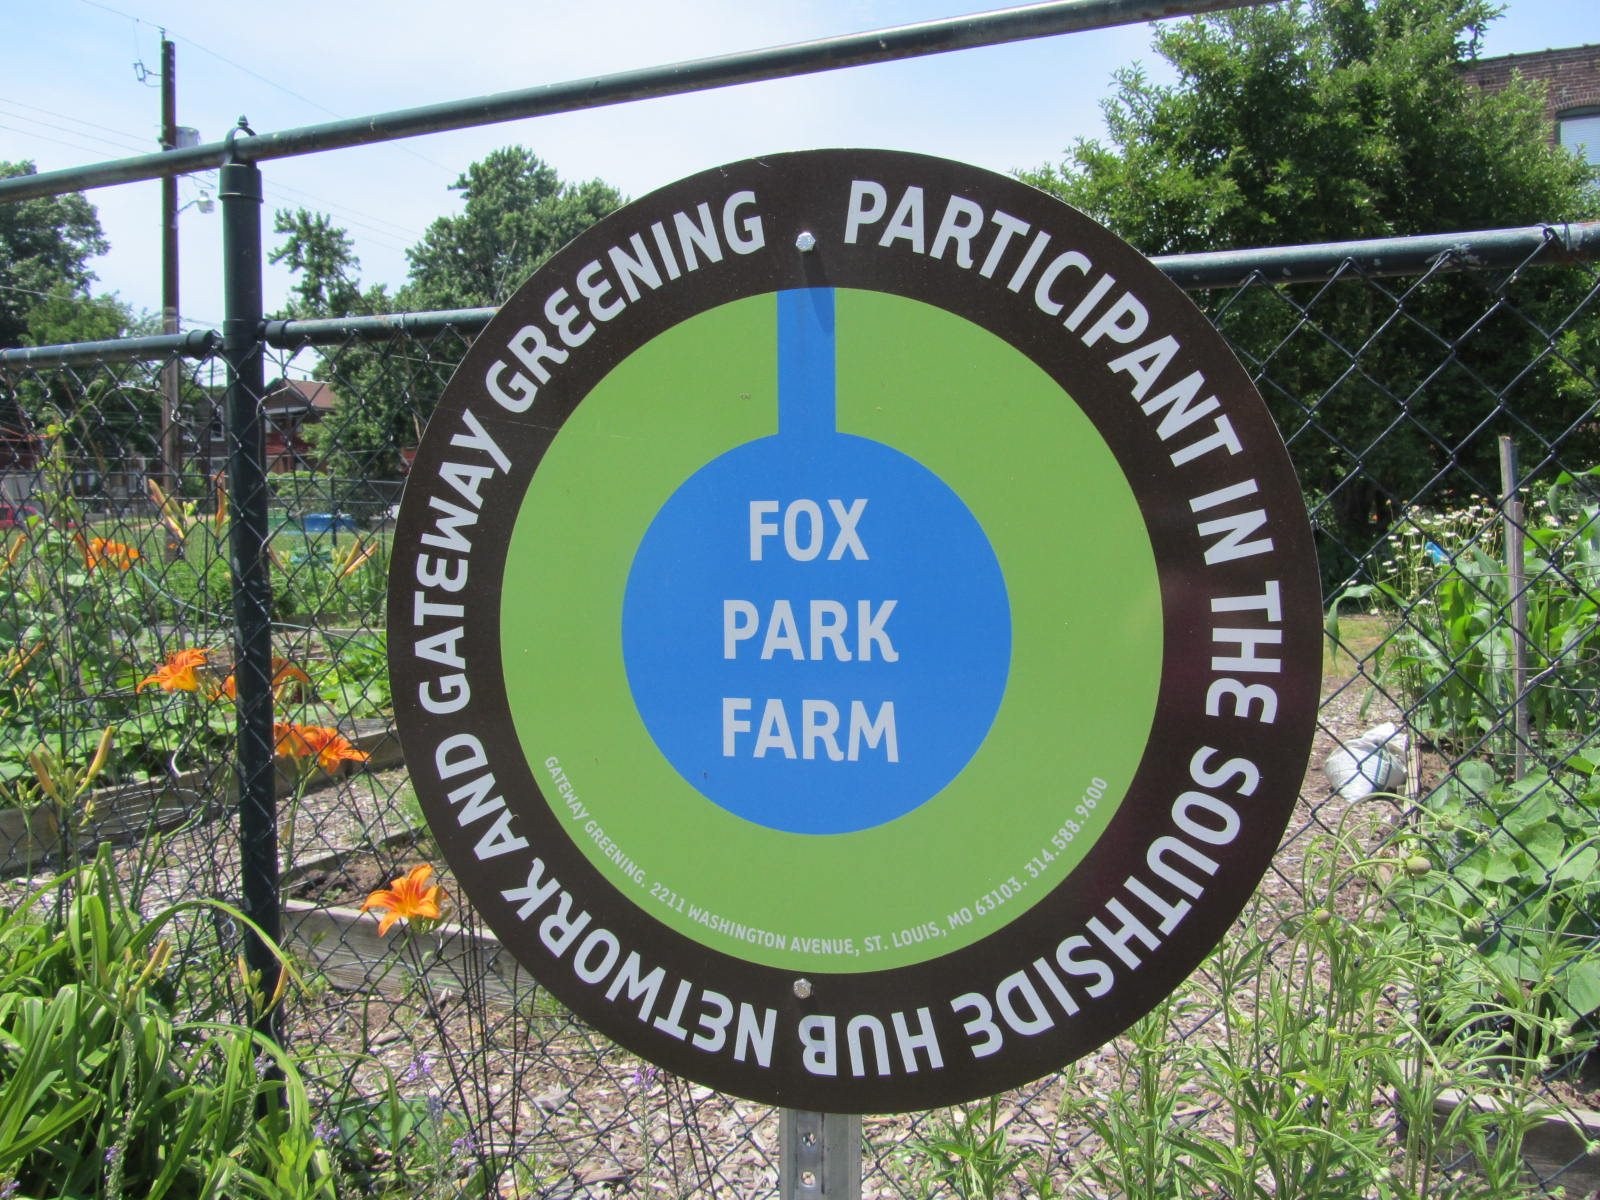 St. Louis in Pictures: Fox Park